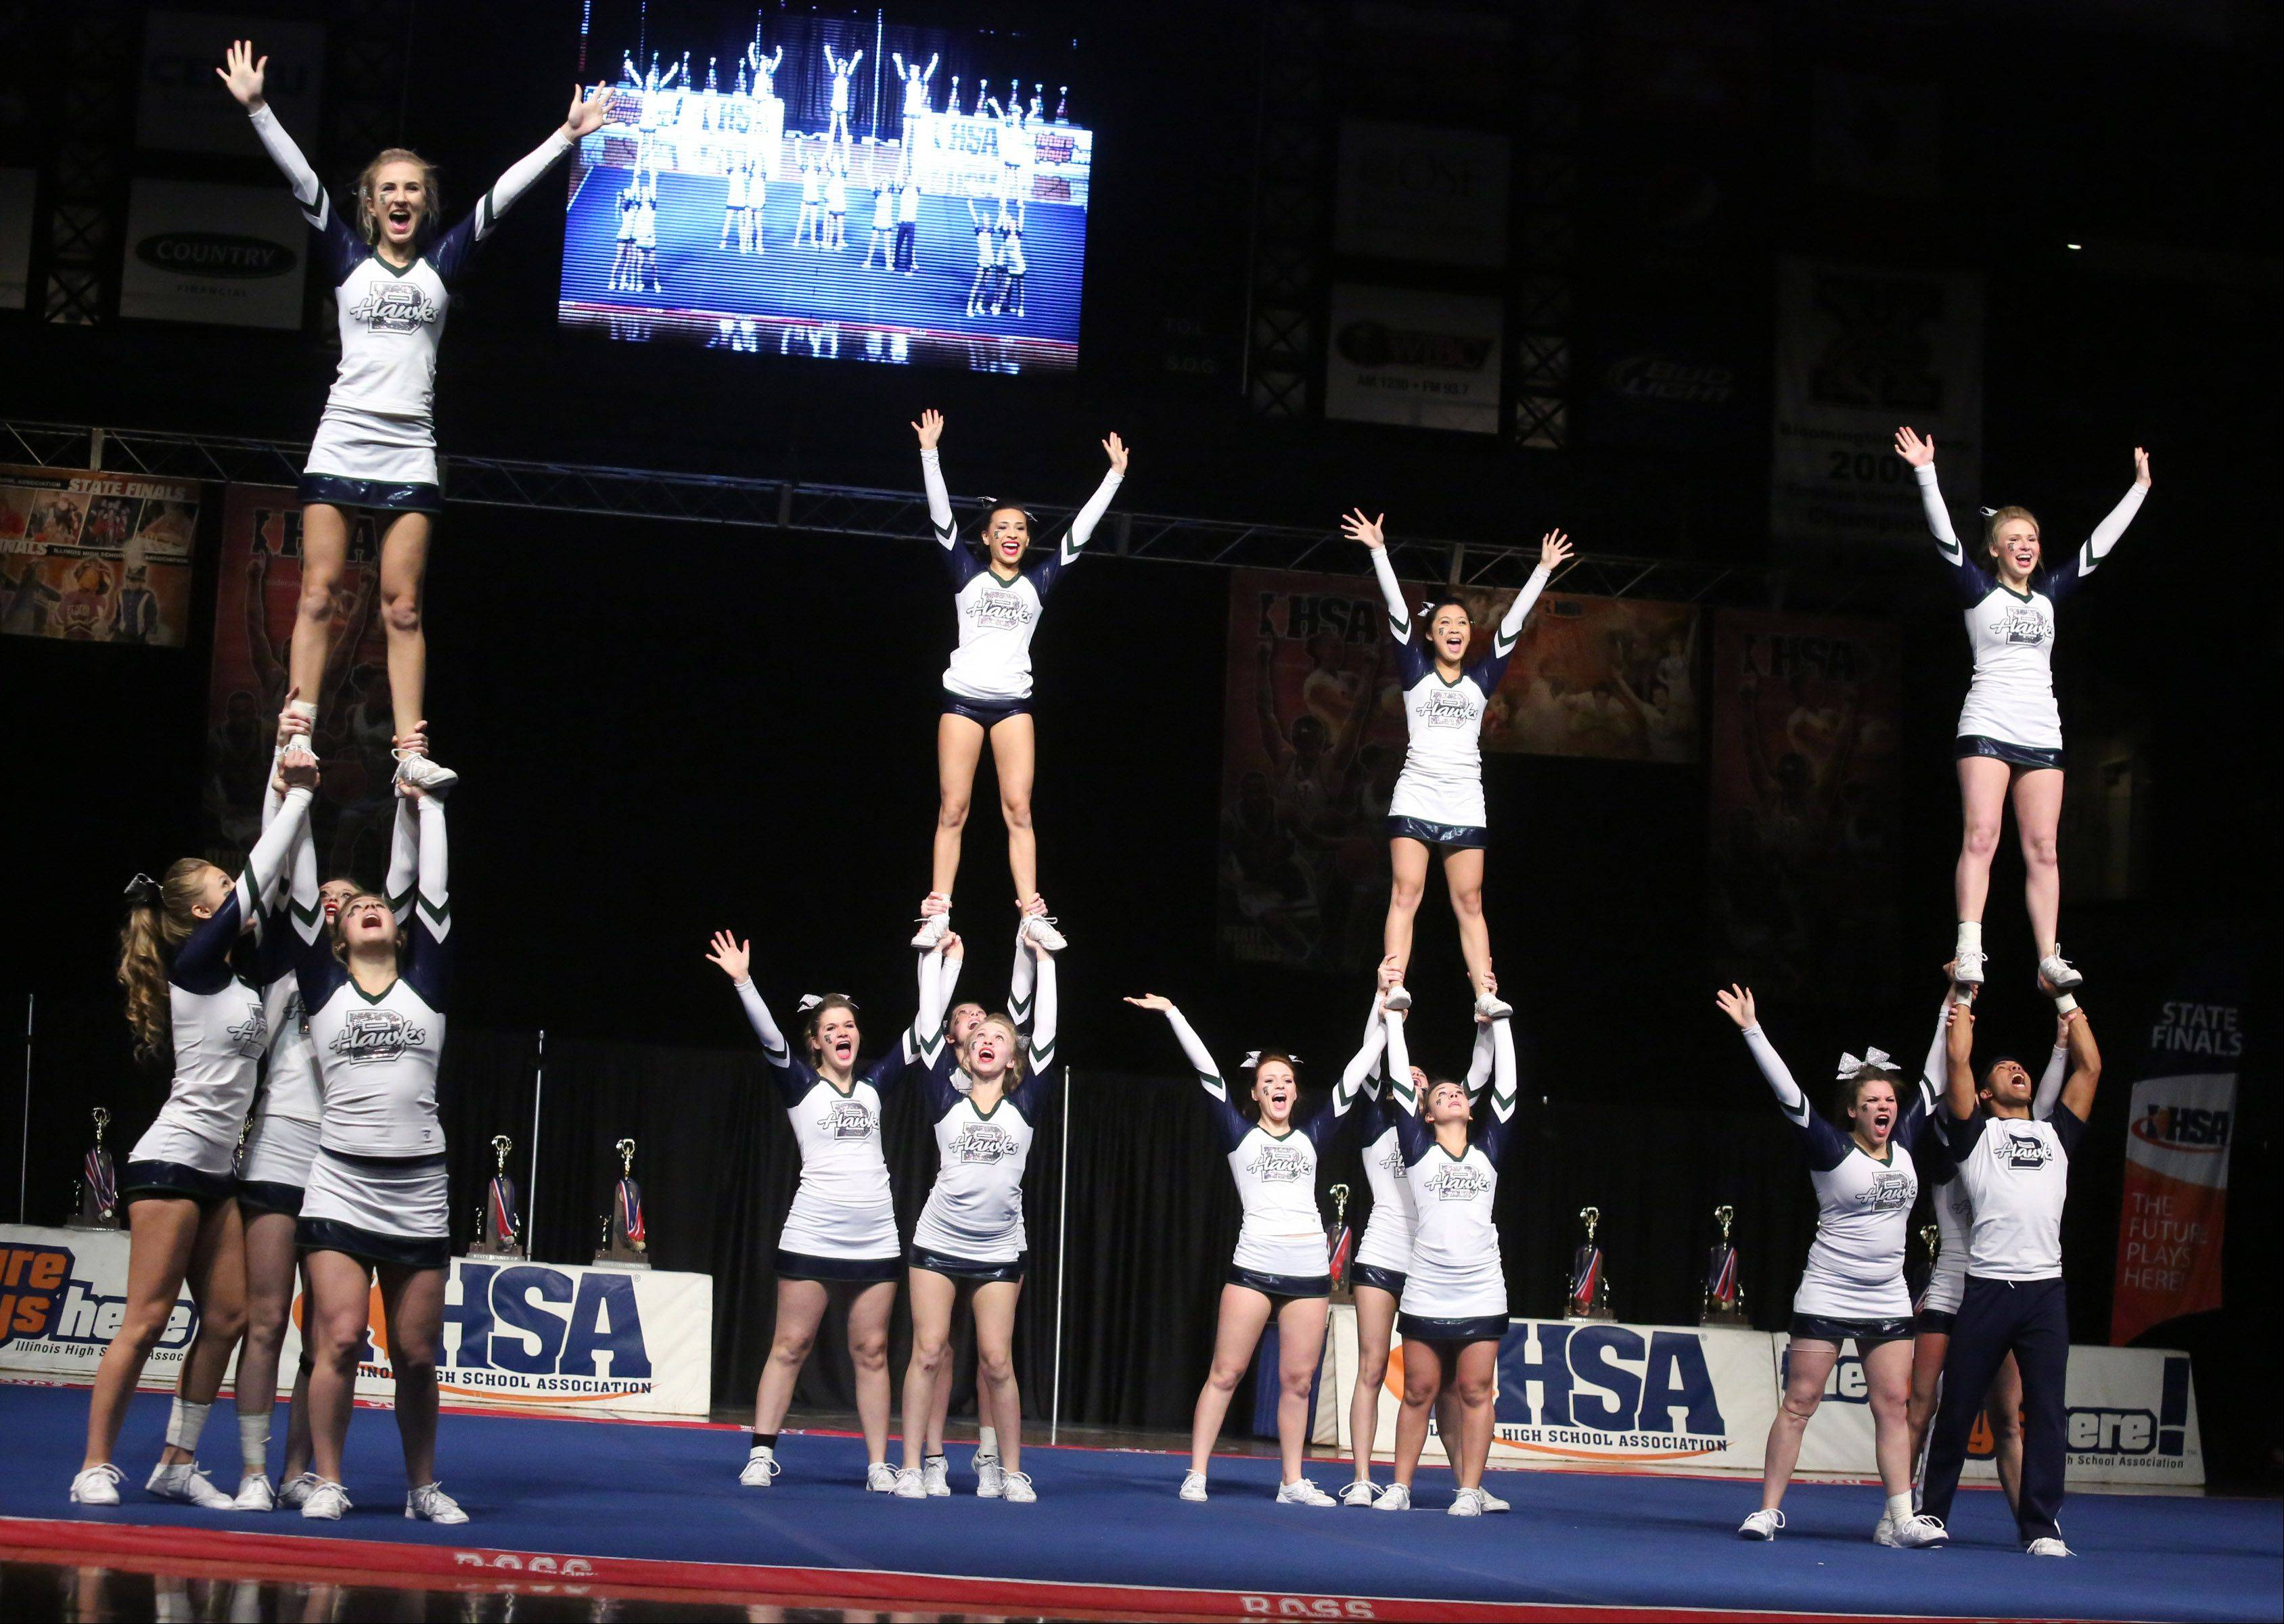 Bartlett High School's cheer team performs in the large team category.